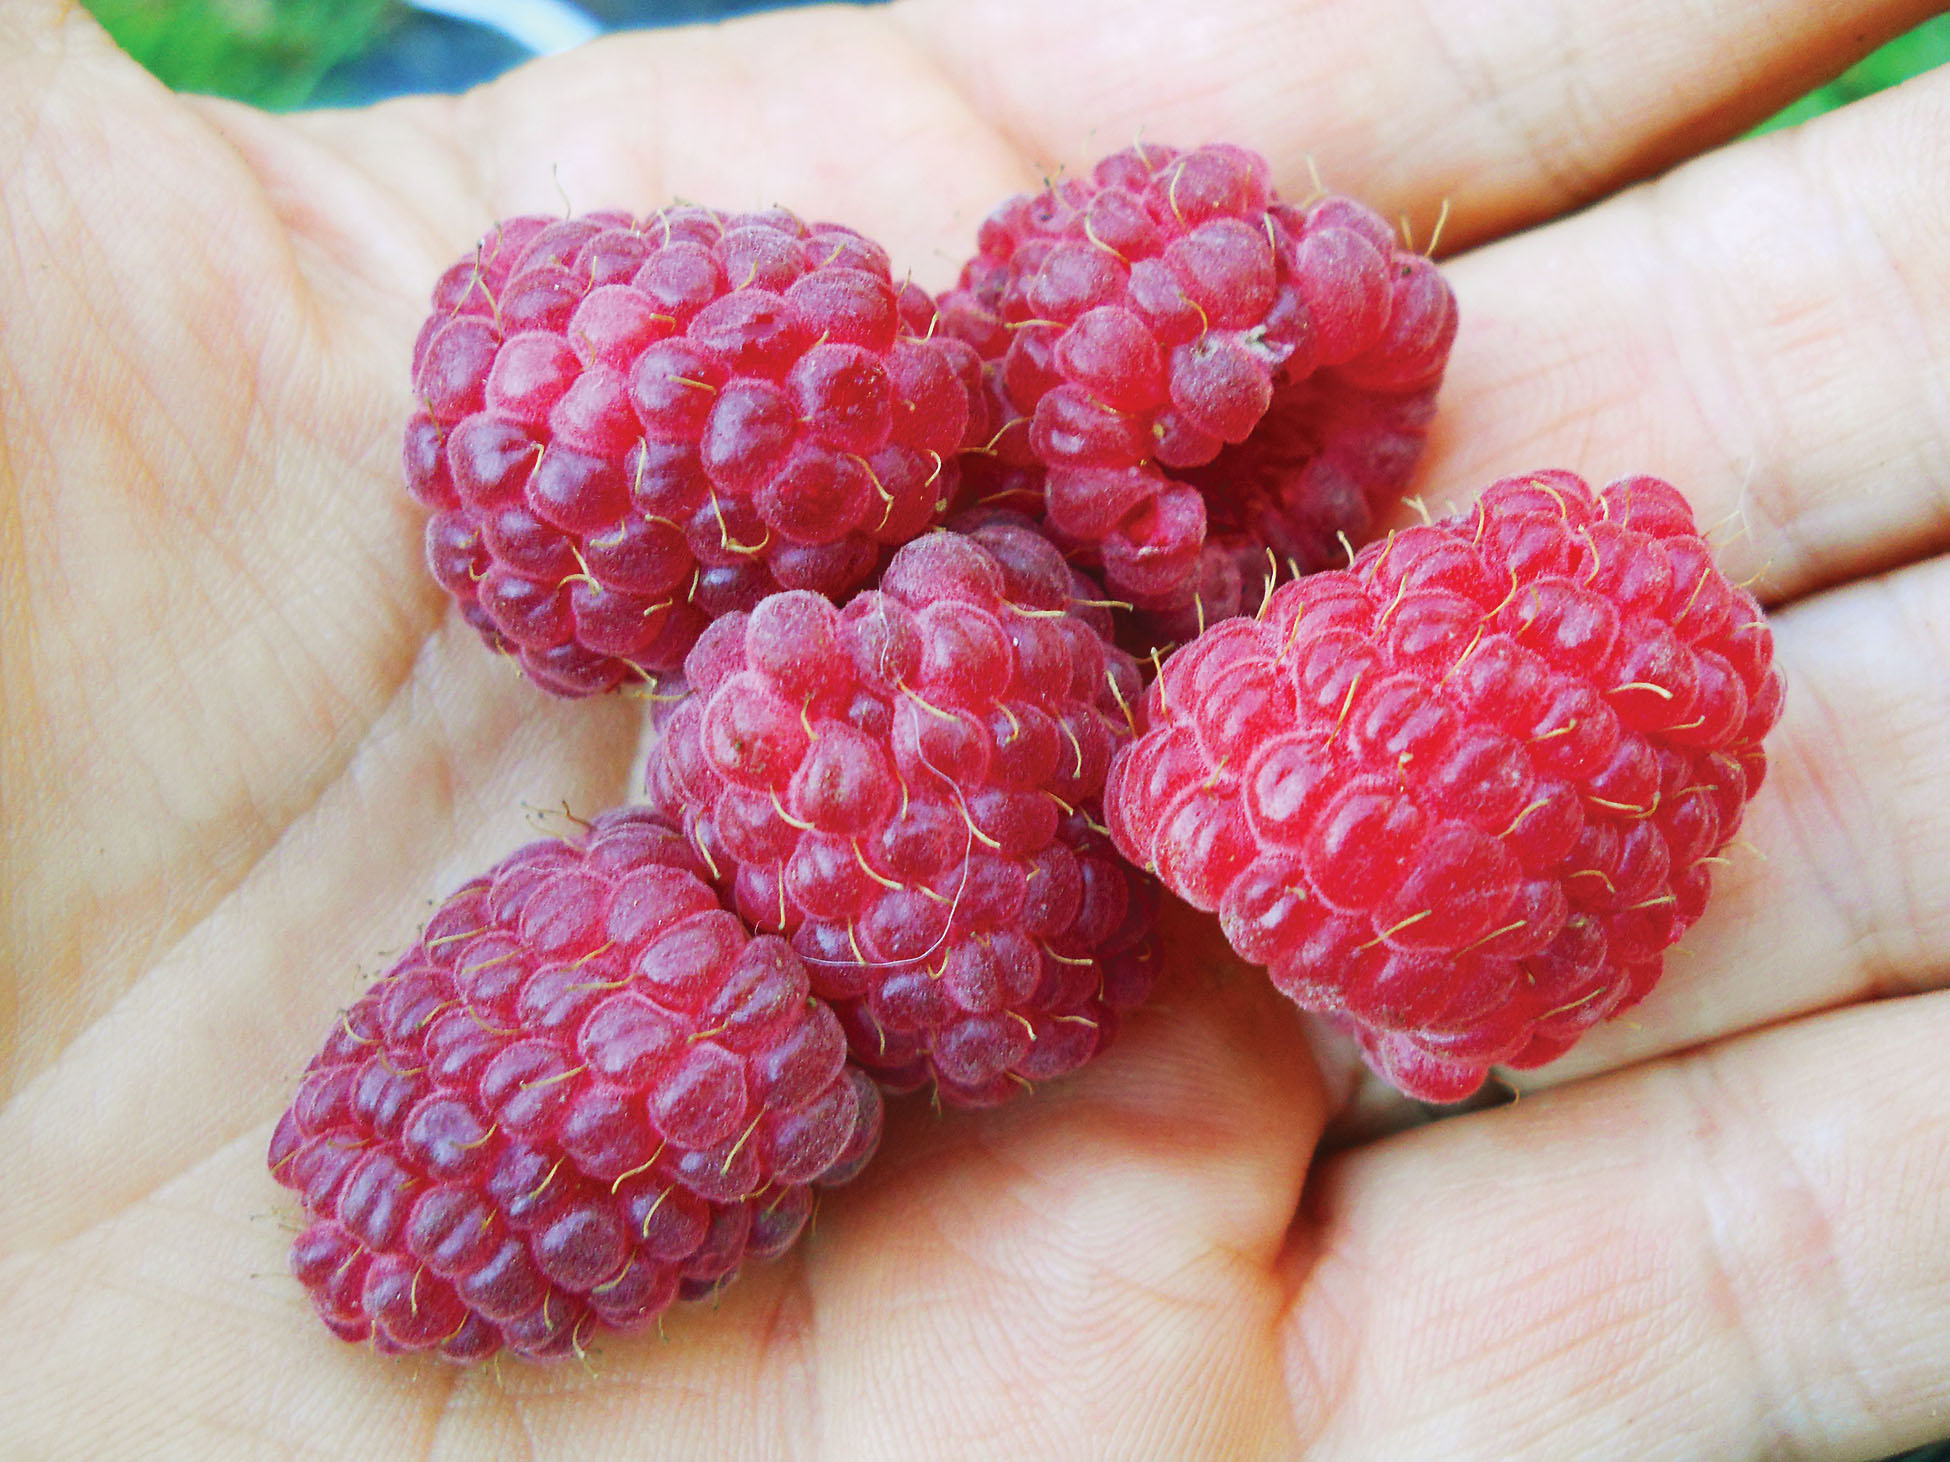 Bramble On: The Ins and Outs of Growing Raspberries